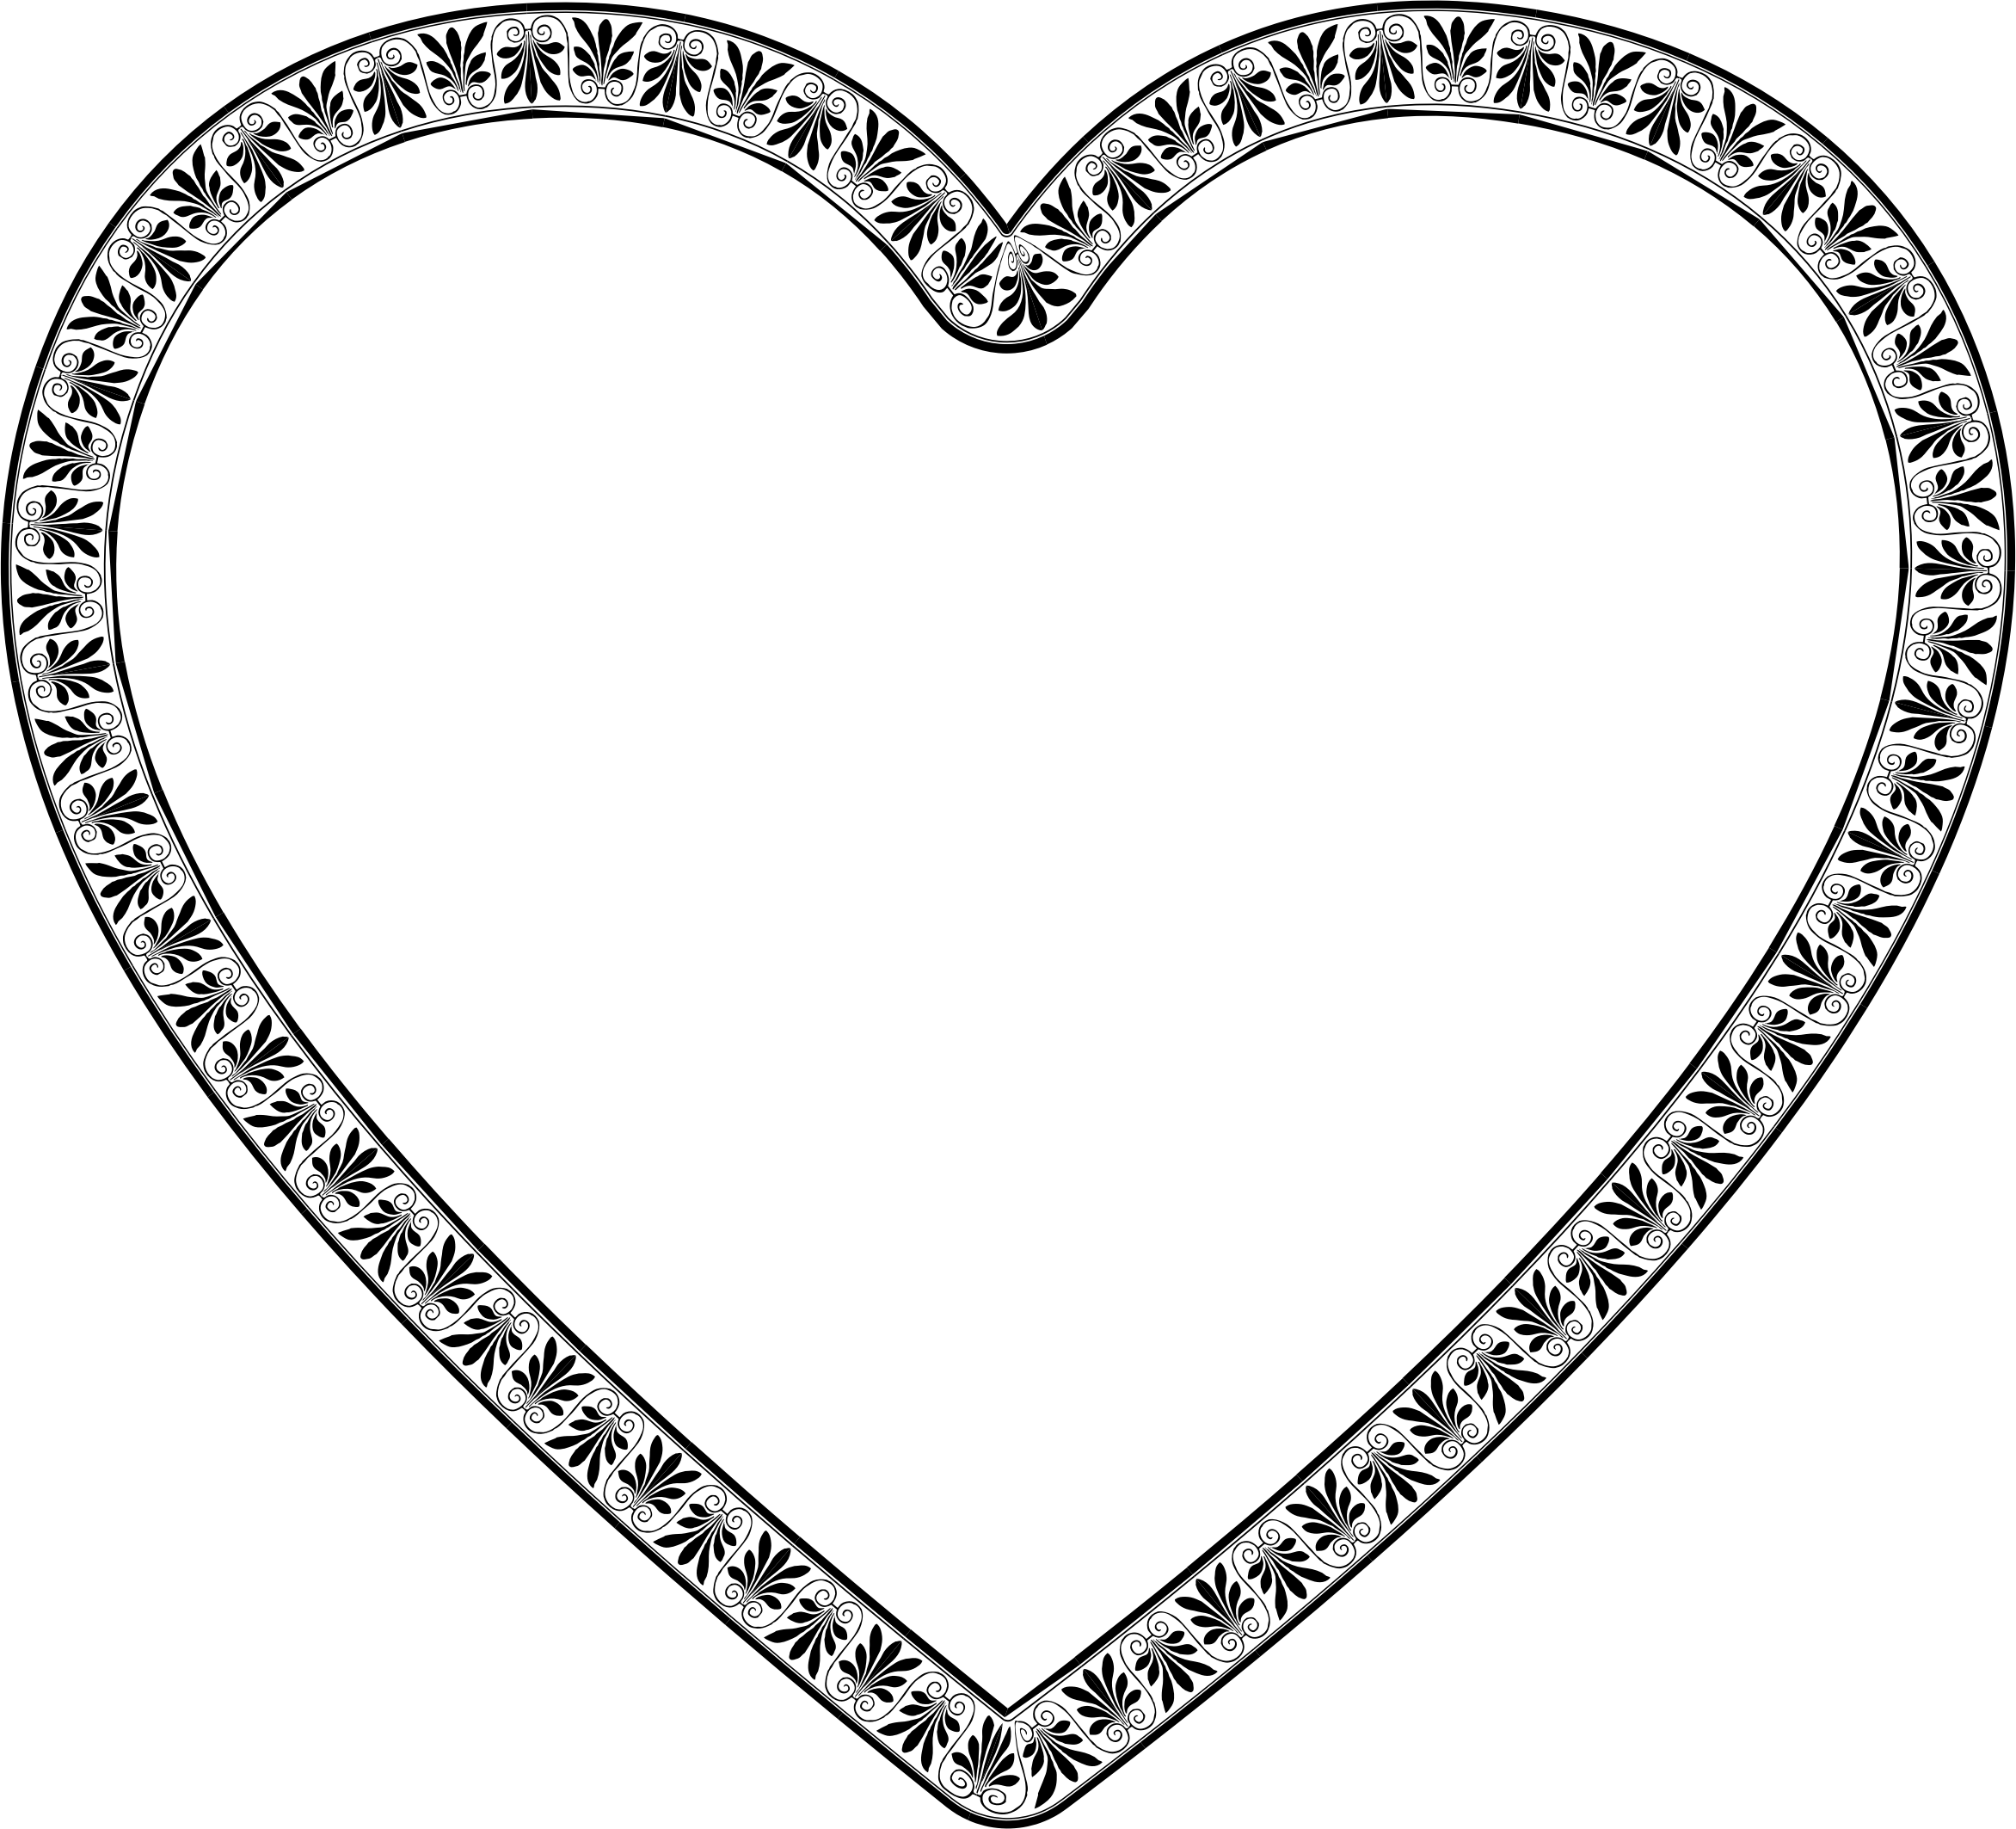 Decorative heart png. Flourish icons free and